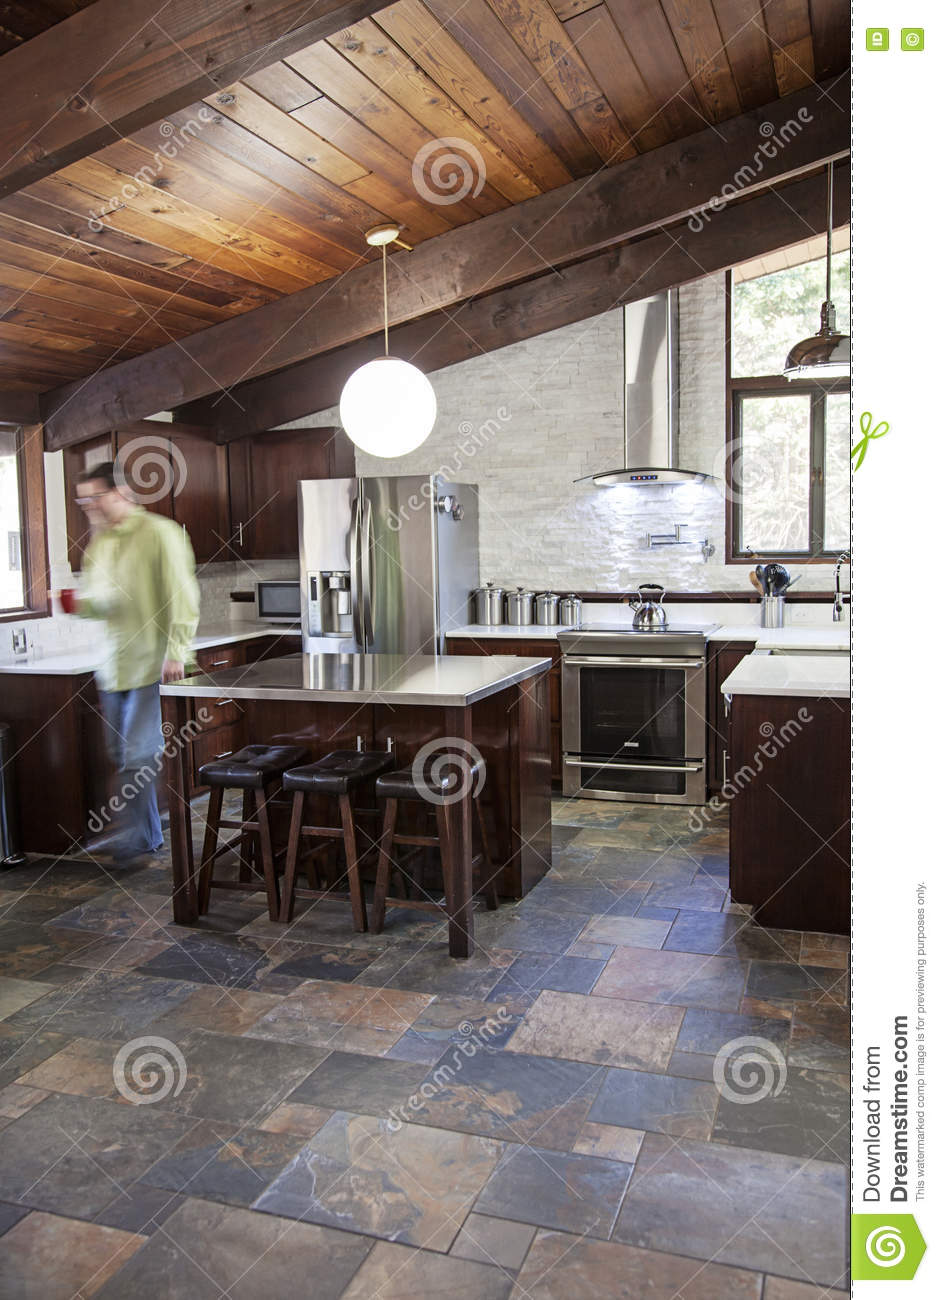 A Modern Kitchen With Slate Floor, Stainless Steel, White And Cherry  Finishes. Motion Blur Of Man Walking In Kitchen.